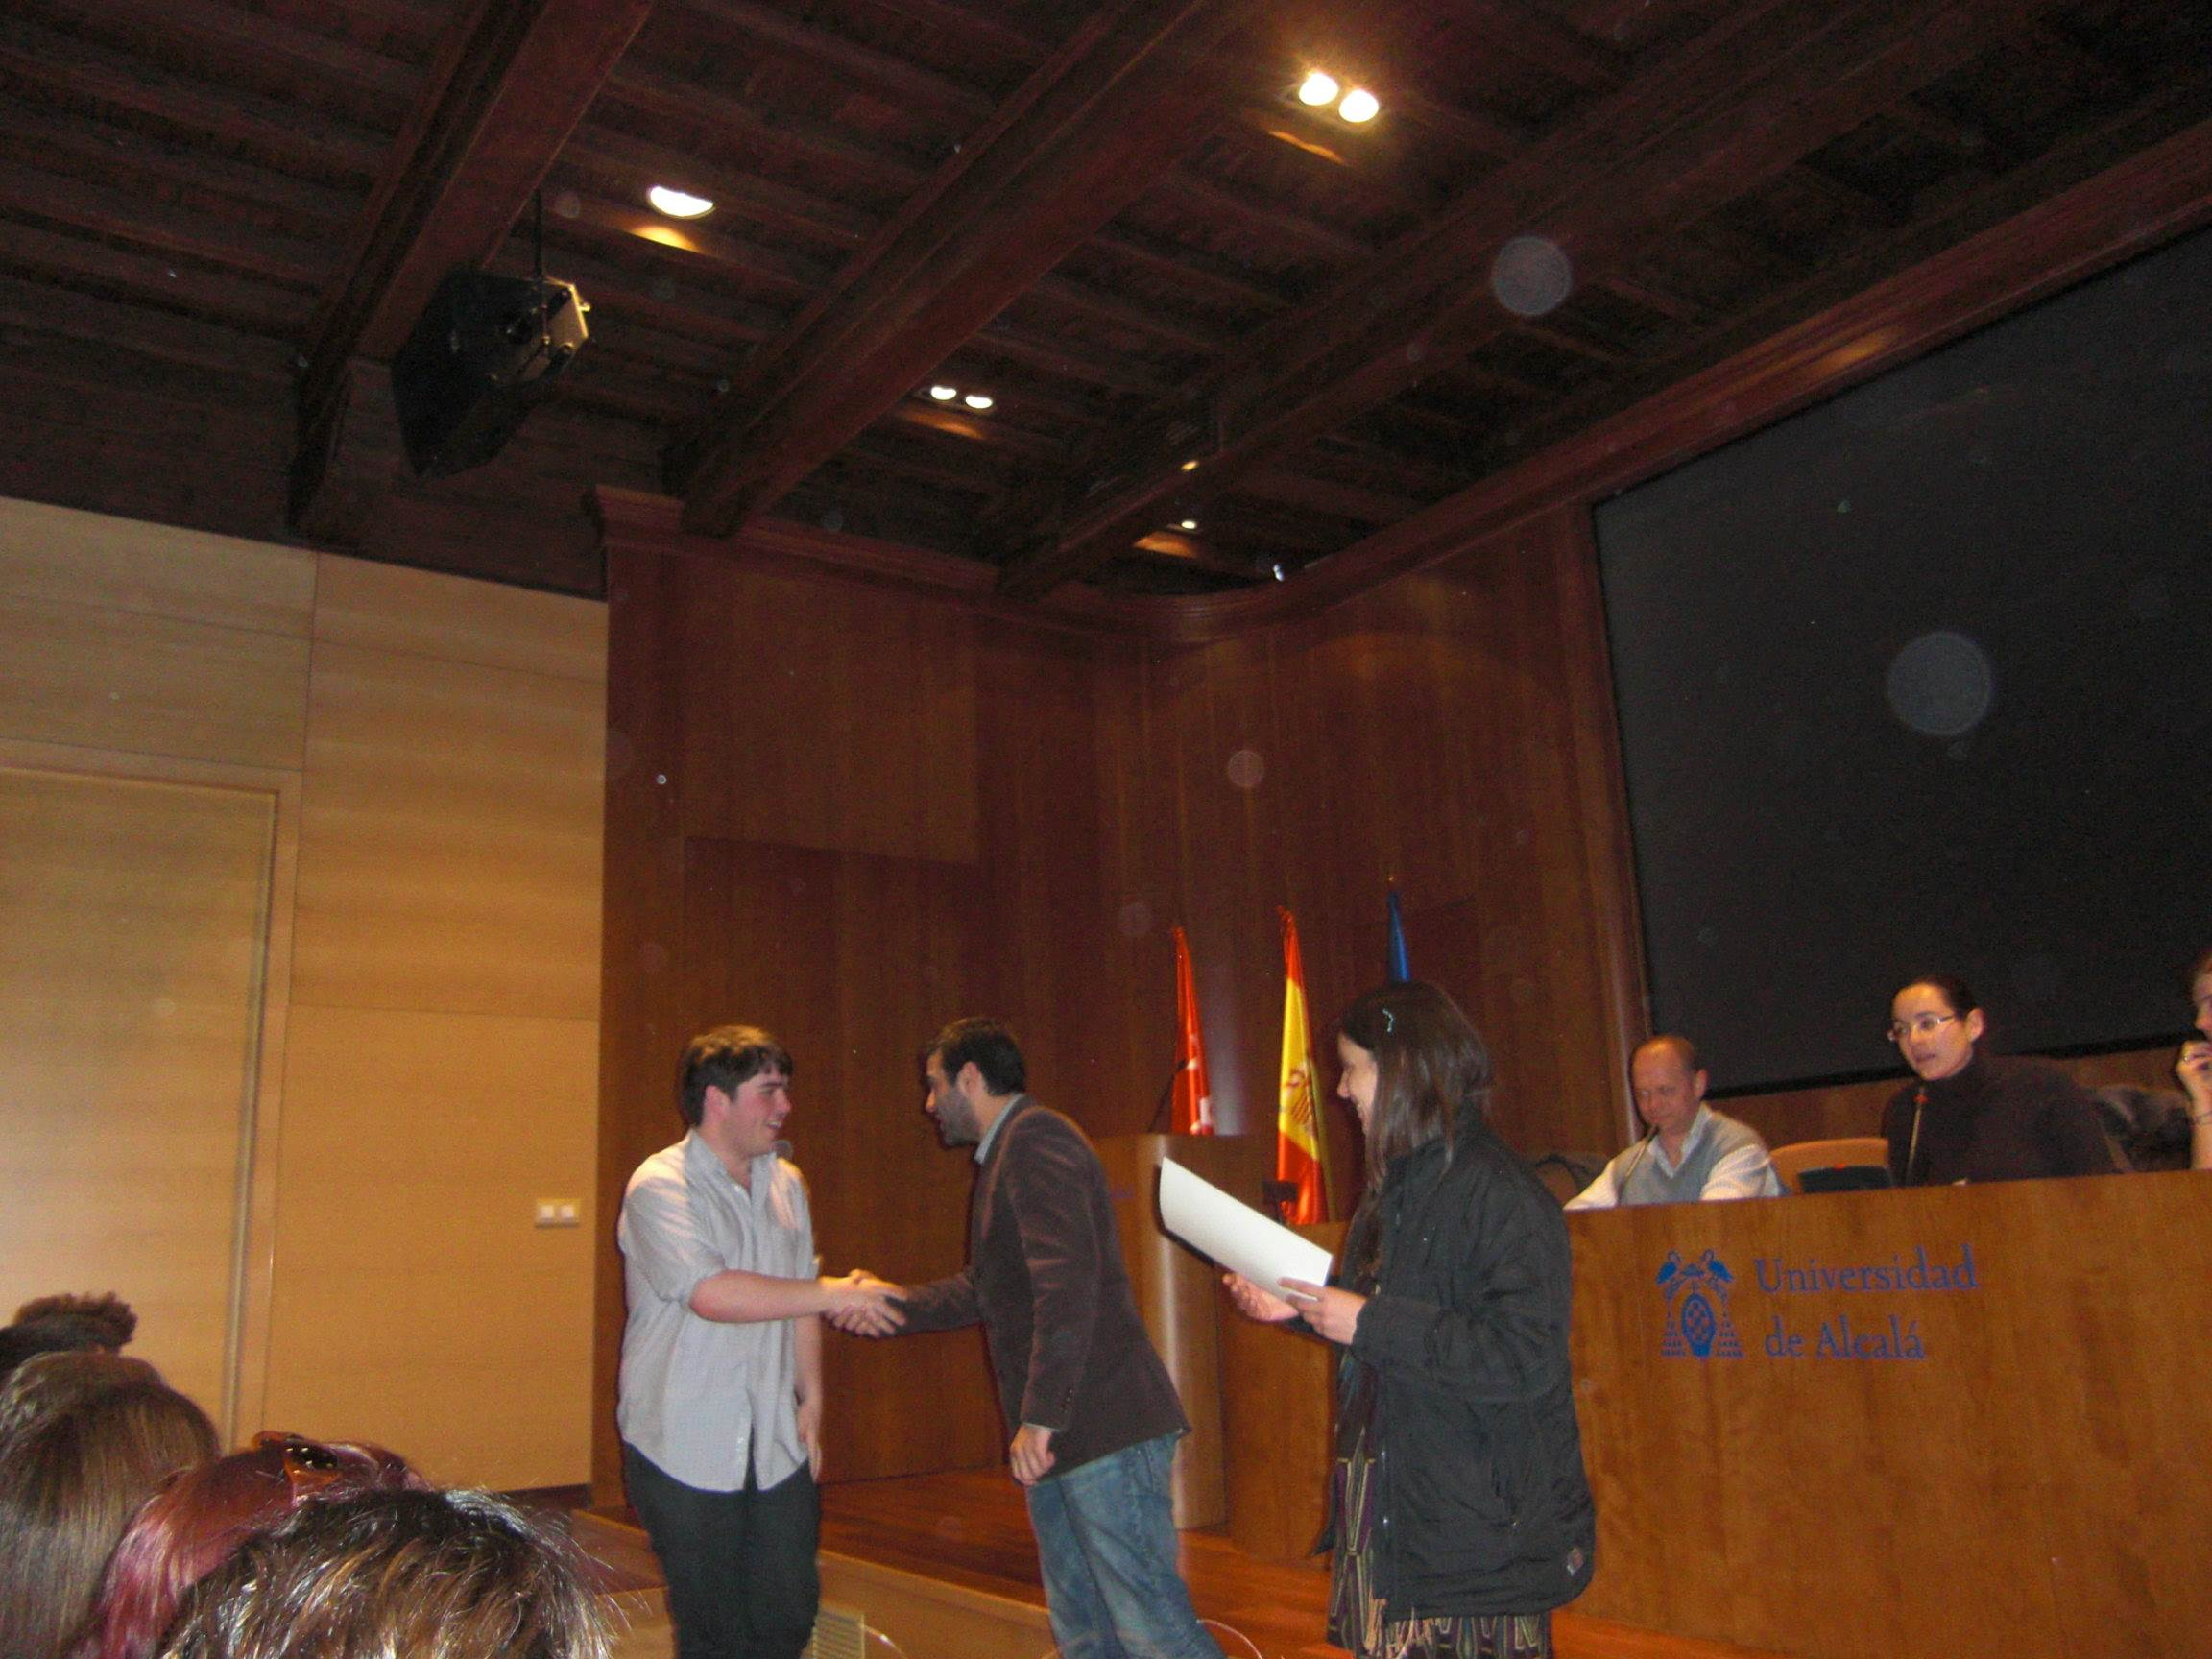 Closing ceremony (winter 2010)